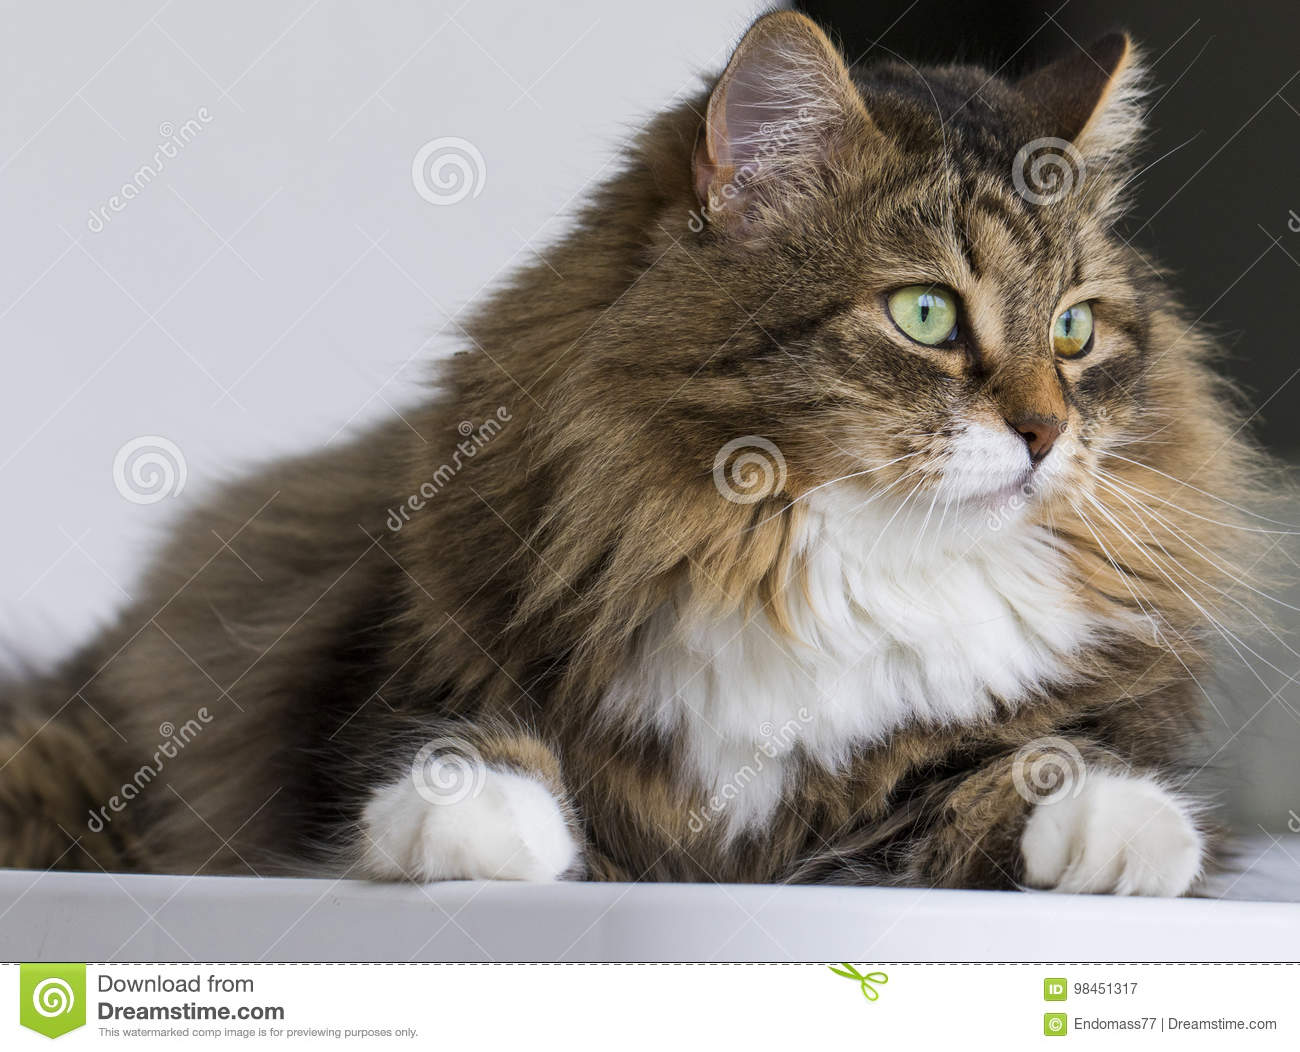 Lovely cat in the house looking out, brown tabby cat